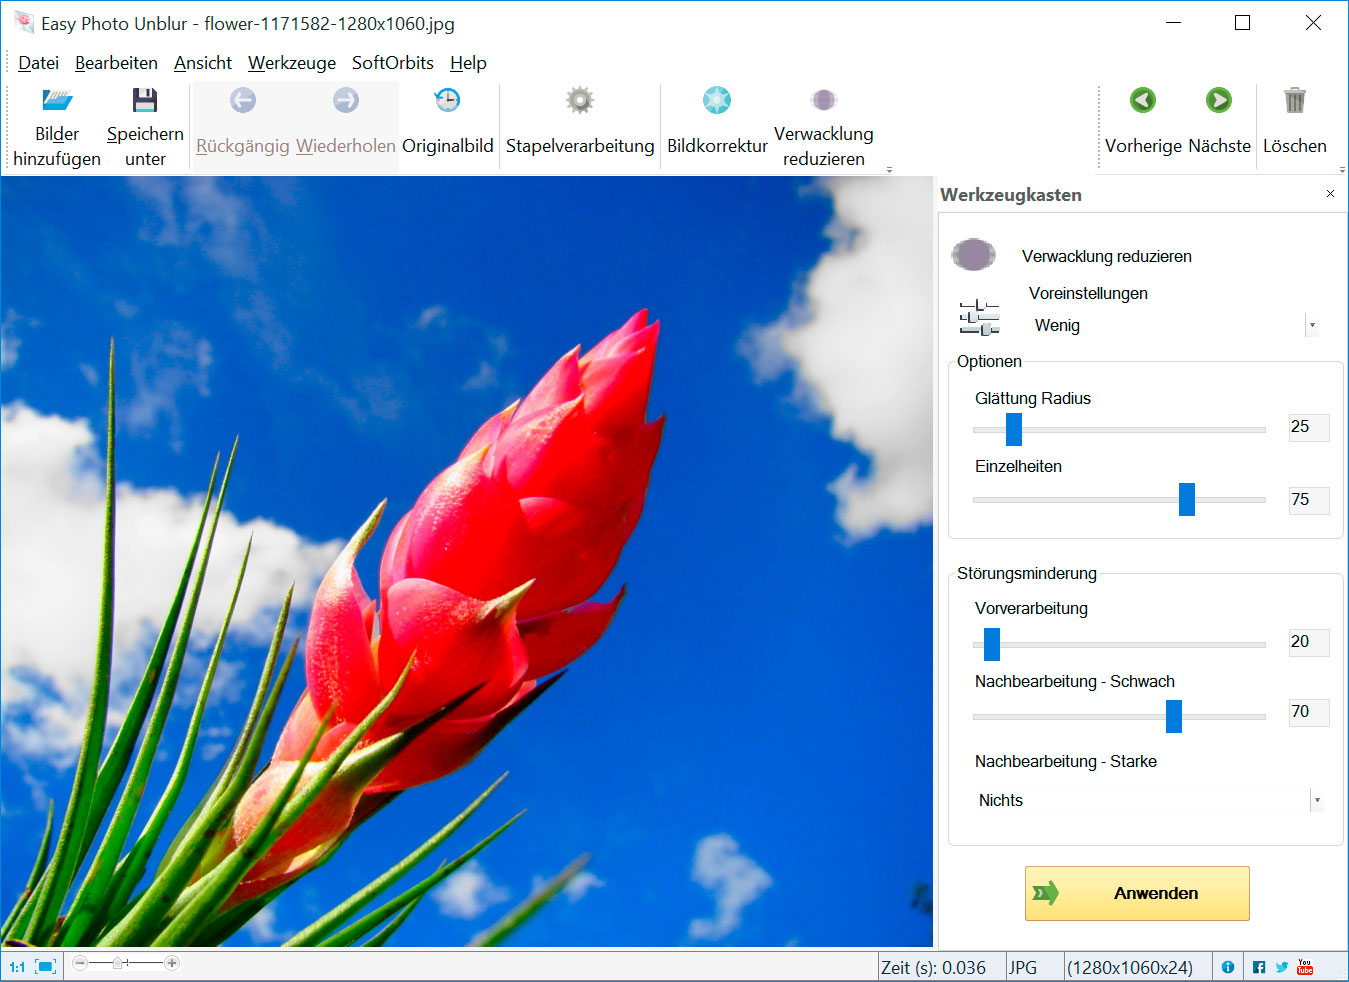 Easy Photo Unblur Screenshots